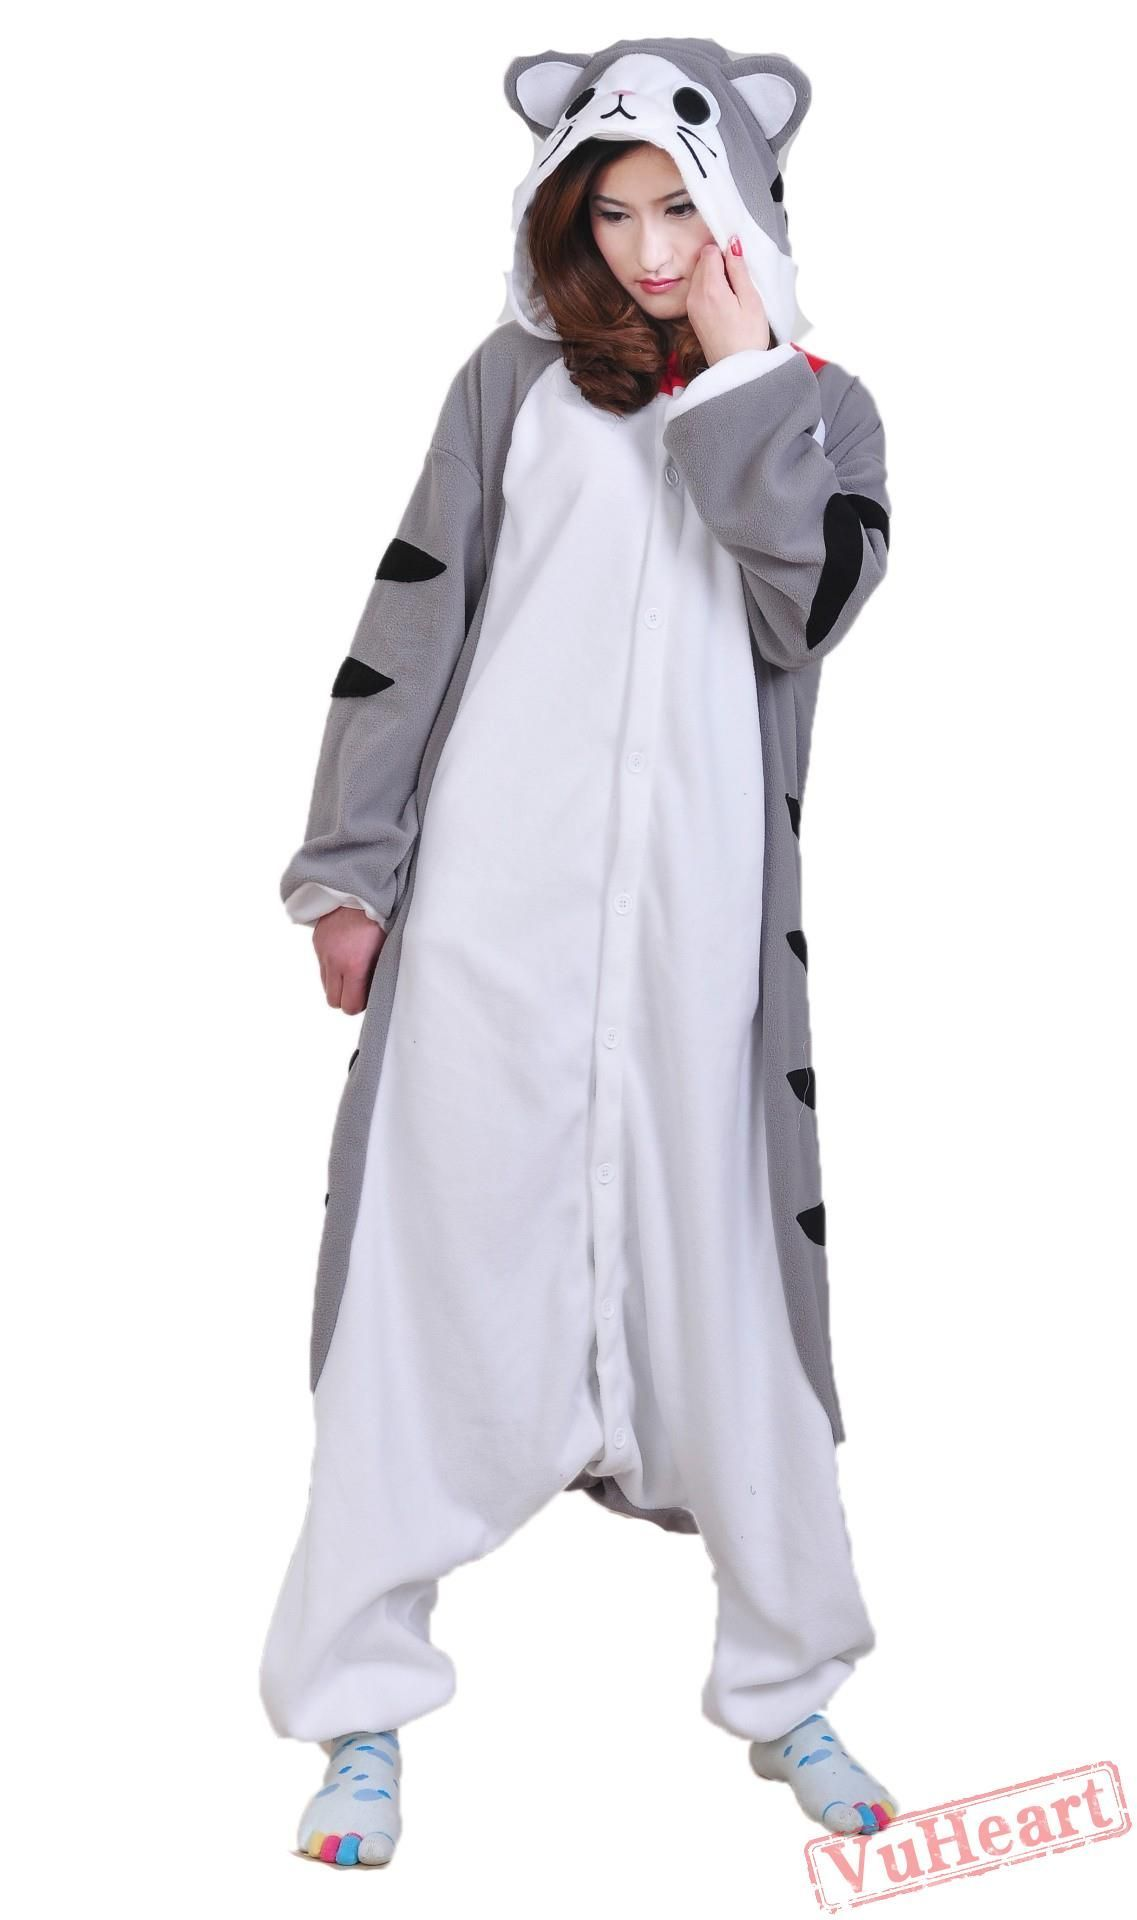 Cheese Cat Kigurumi Onesies Pajamas Costumes for Women   Men ... 4dbc5fb28